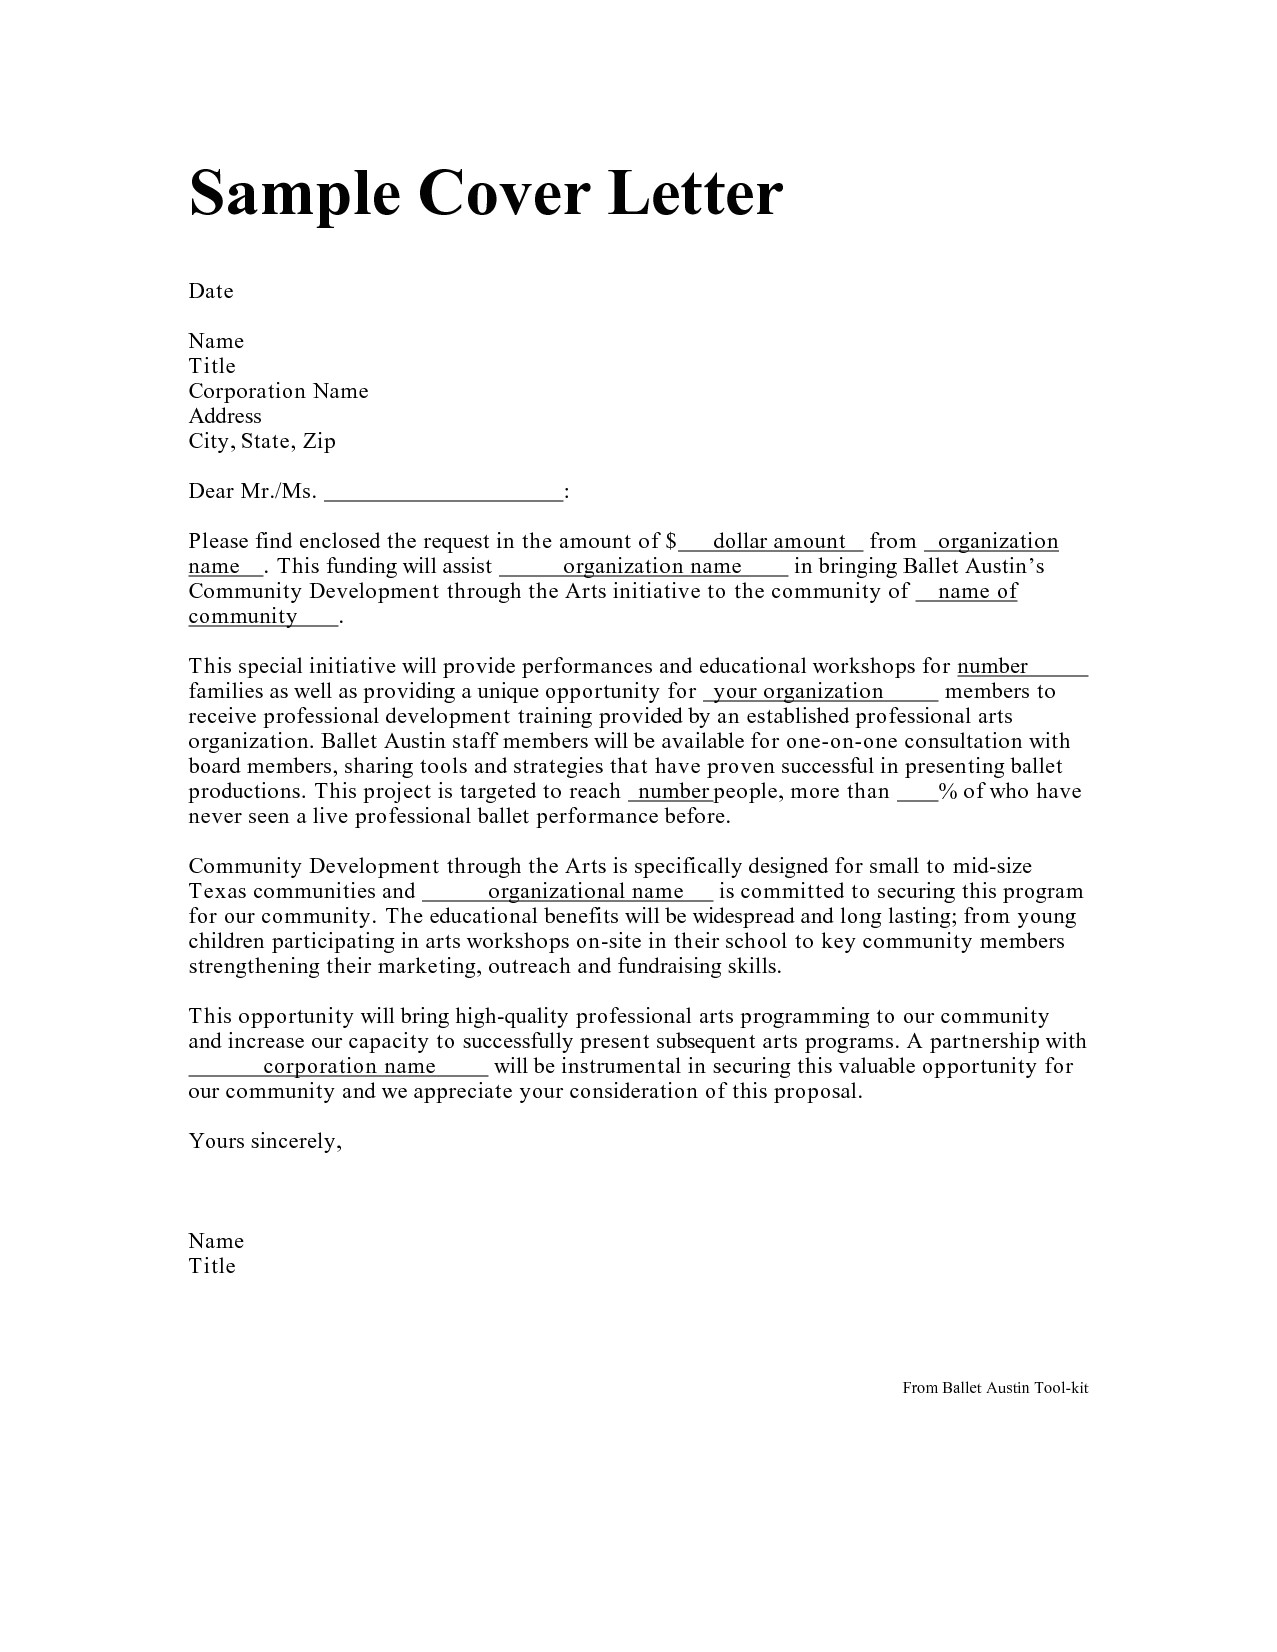 Who Should A Cover Letter Be Addressed to Addressing Cover Letter Business Proposal Templated